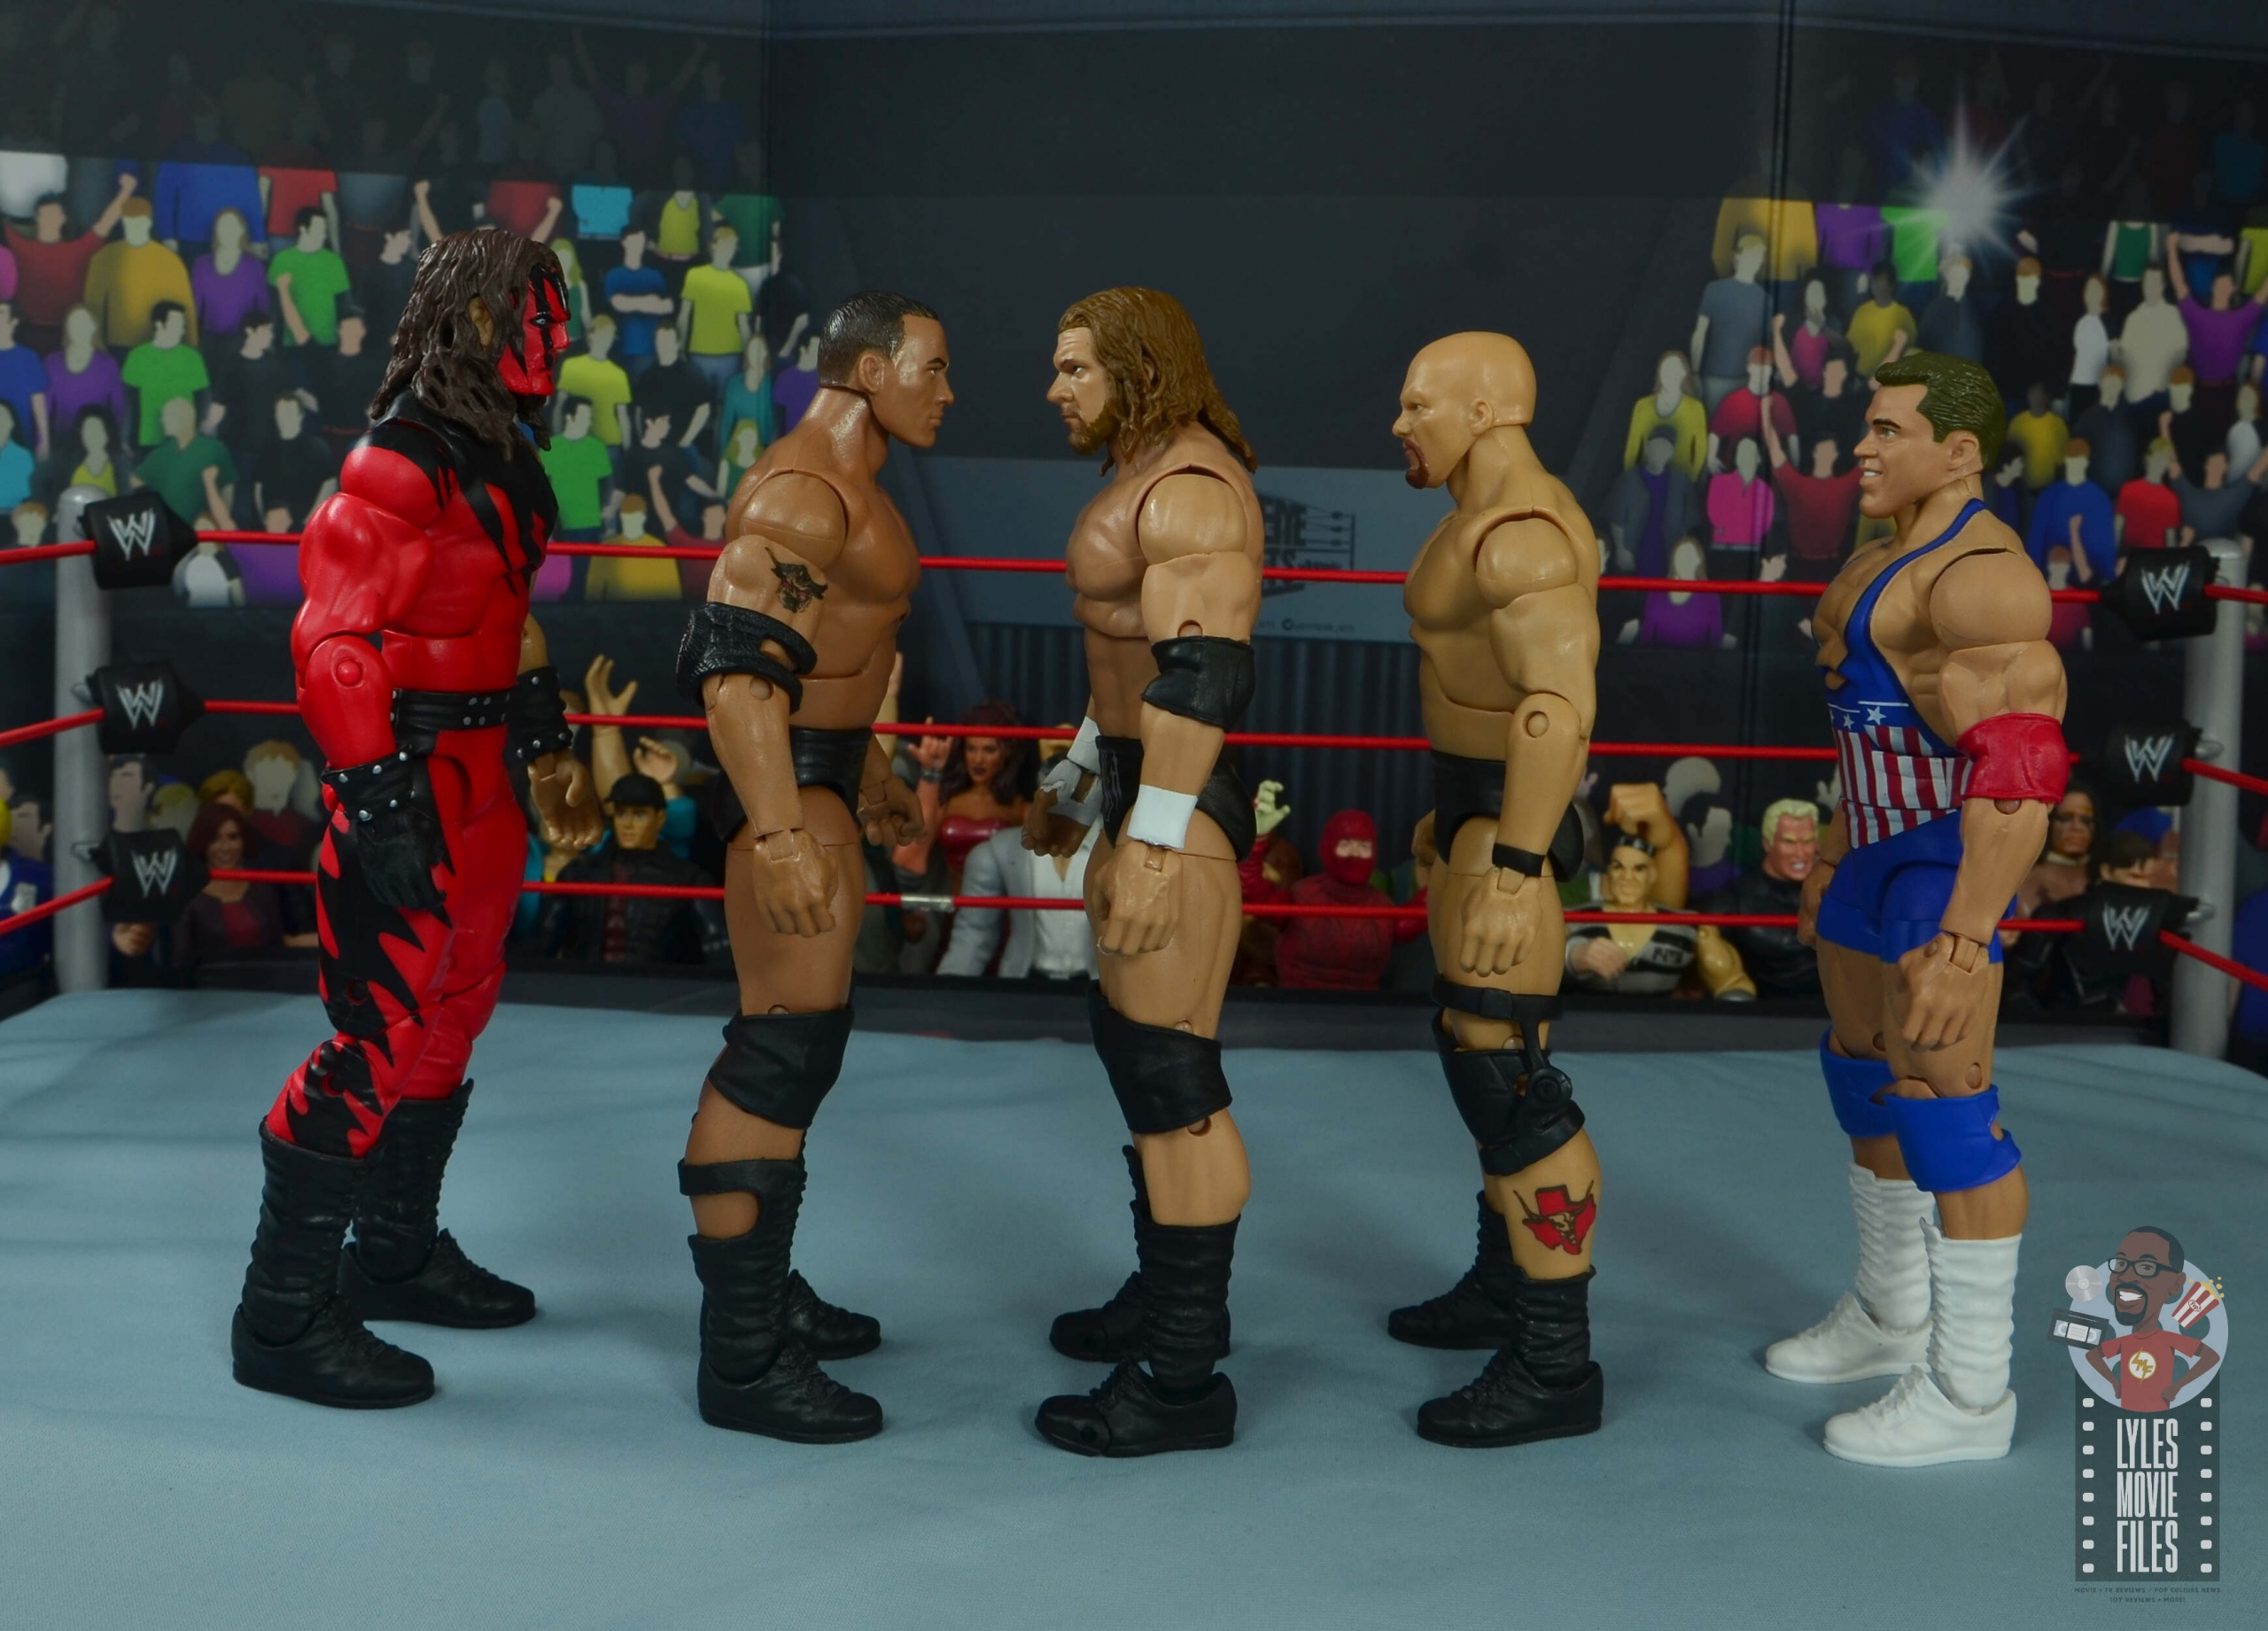 wwe ultimate edition triple h figure review facing kane the rock stone cold and kurt angle lyles movie files wwe ultimate edition triple h figure